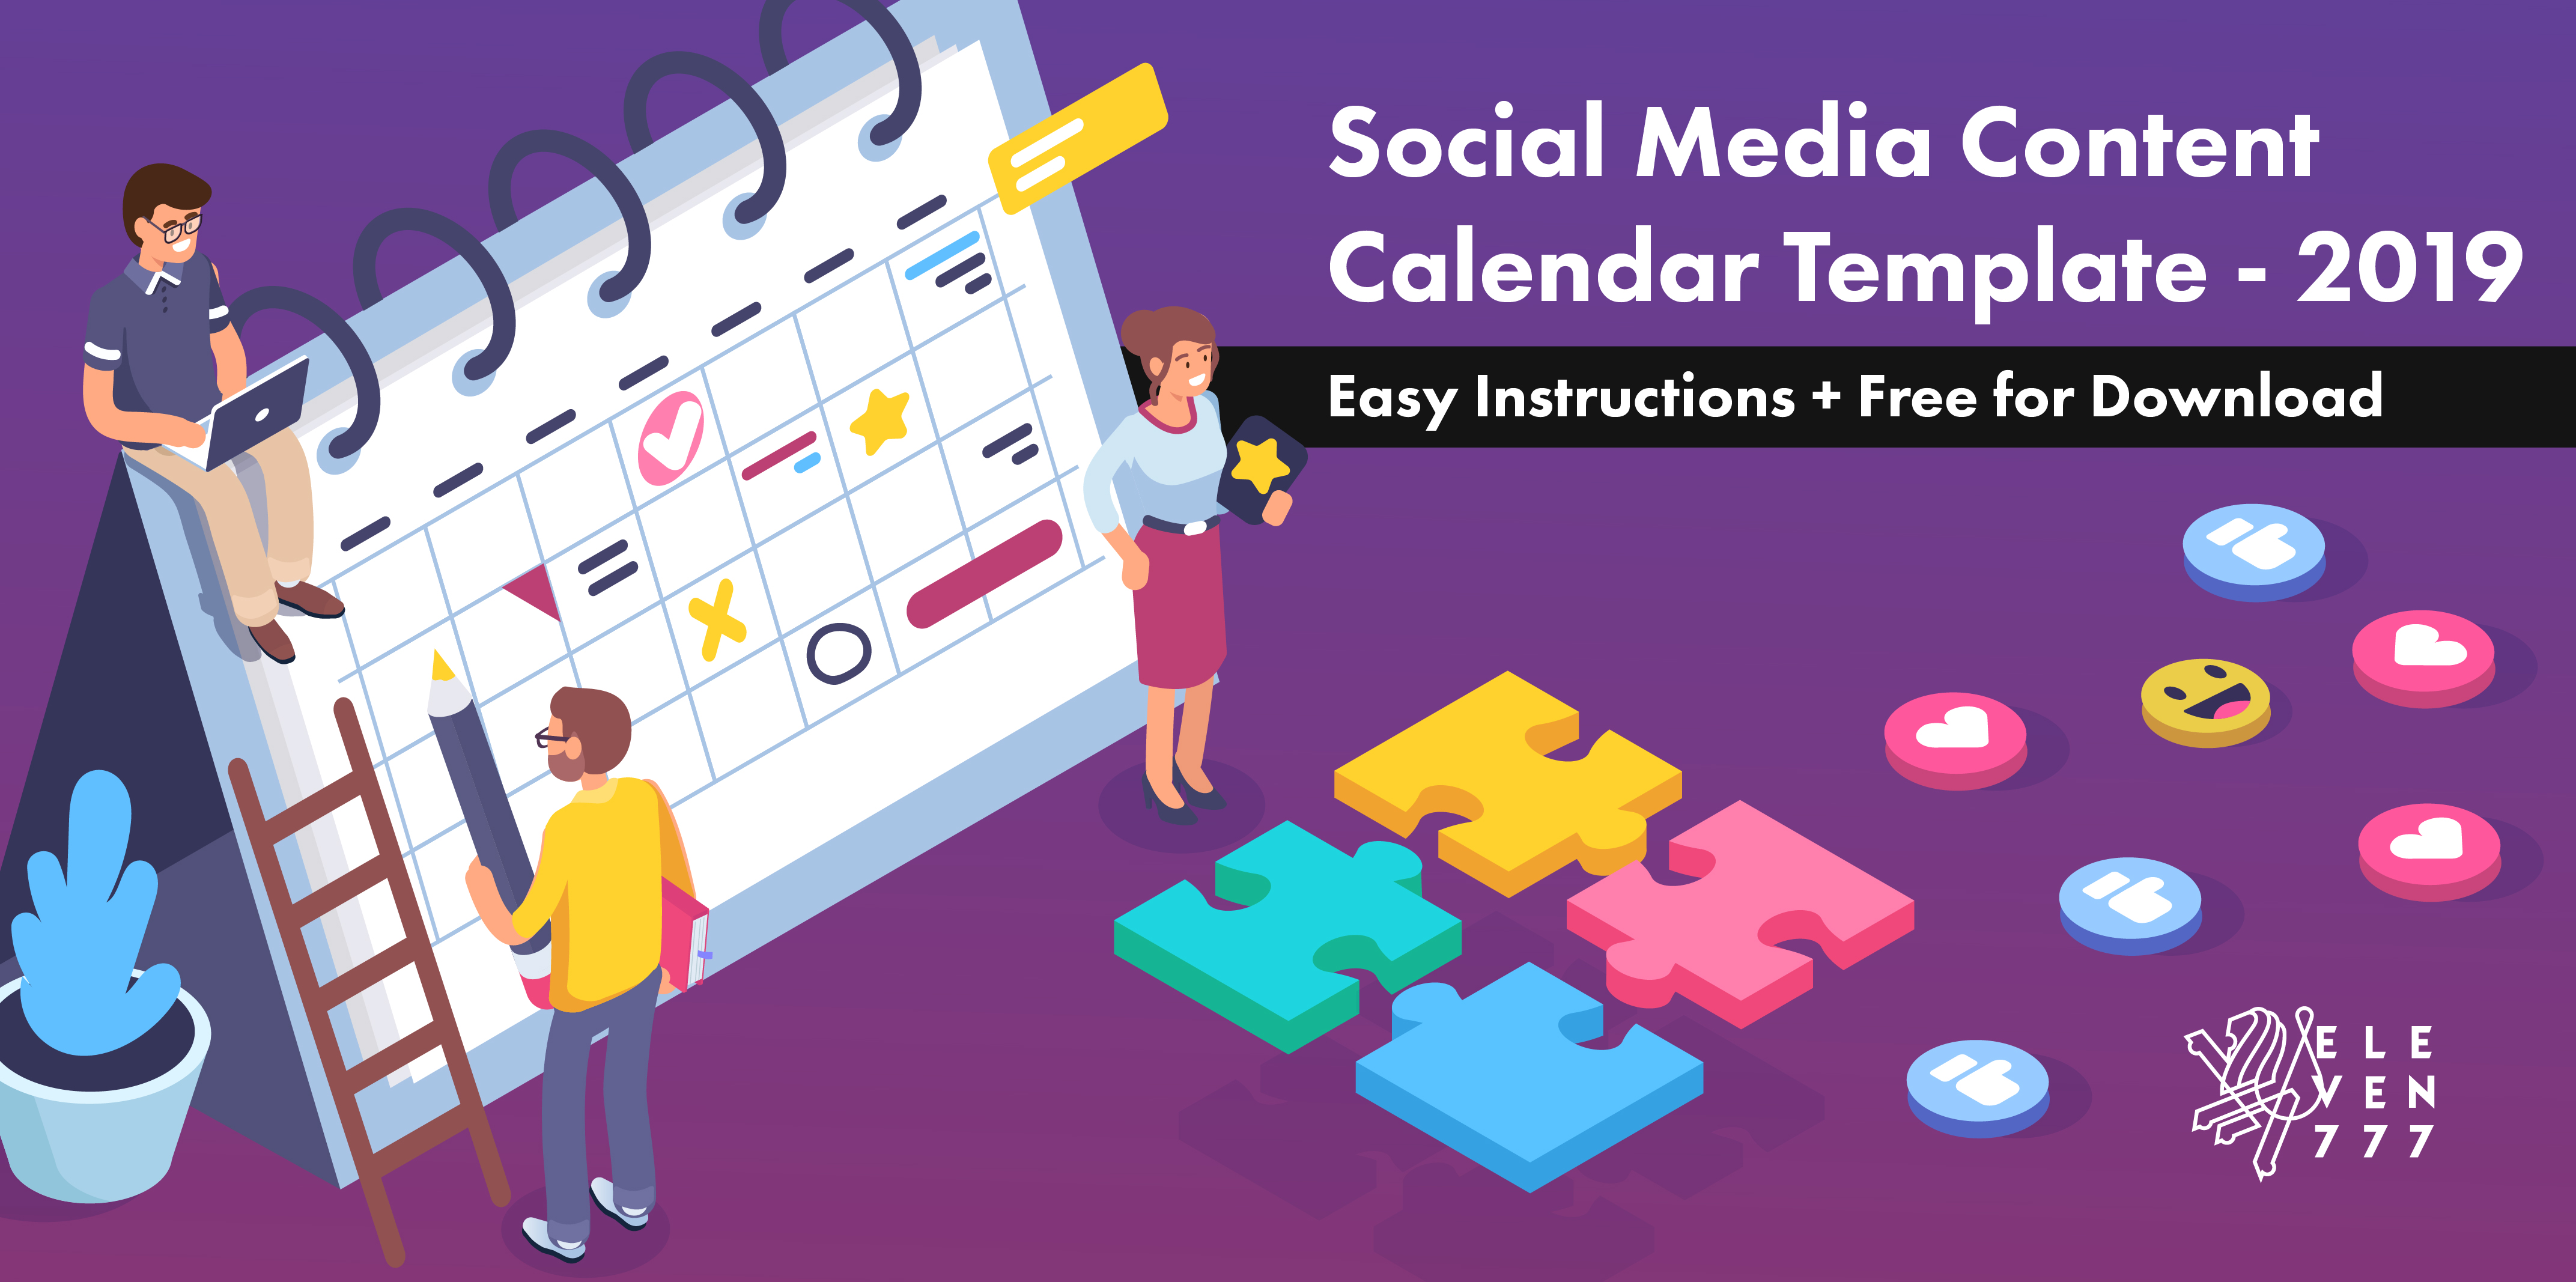 Content Calendar Template 2019.Social Media Calendar Template 2019 For Uae Brands Easy